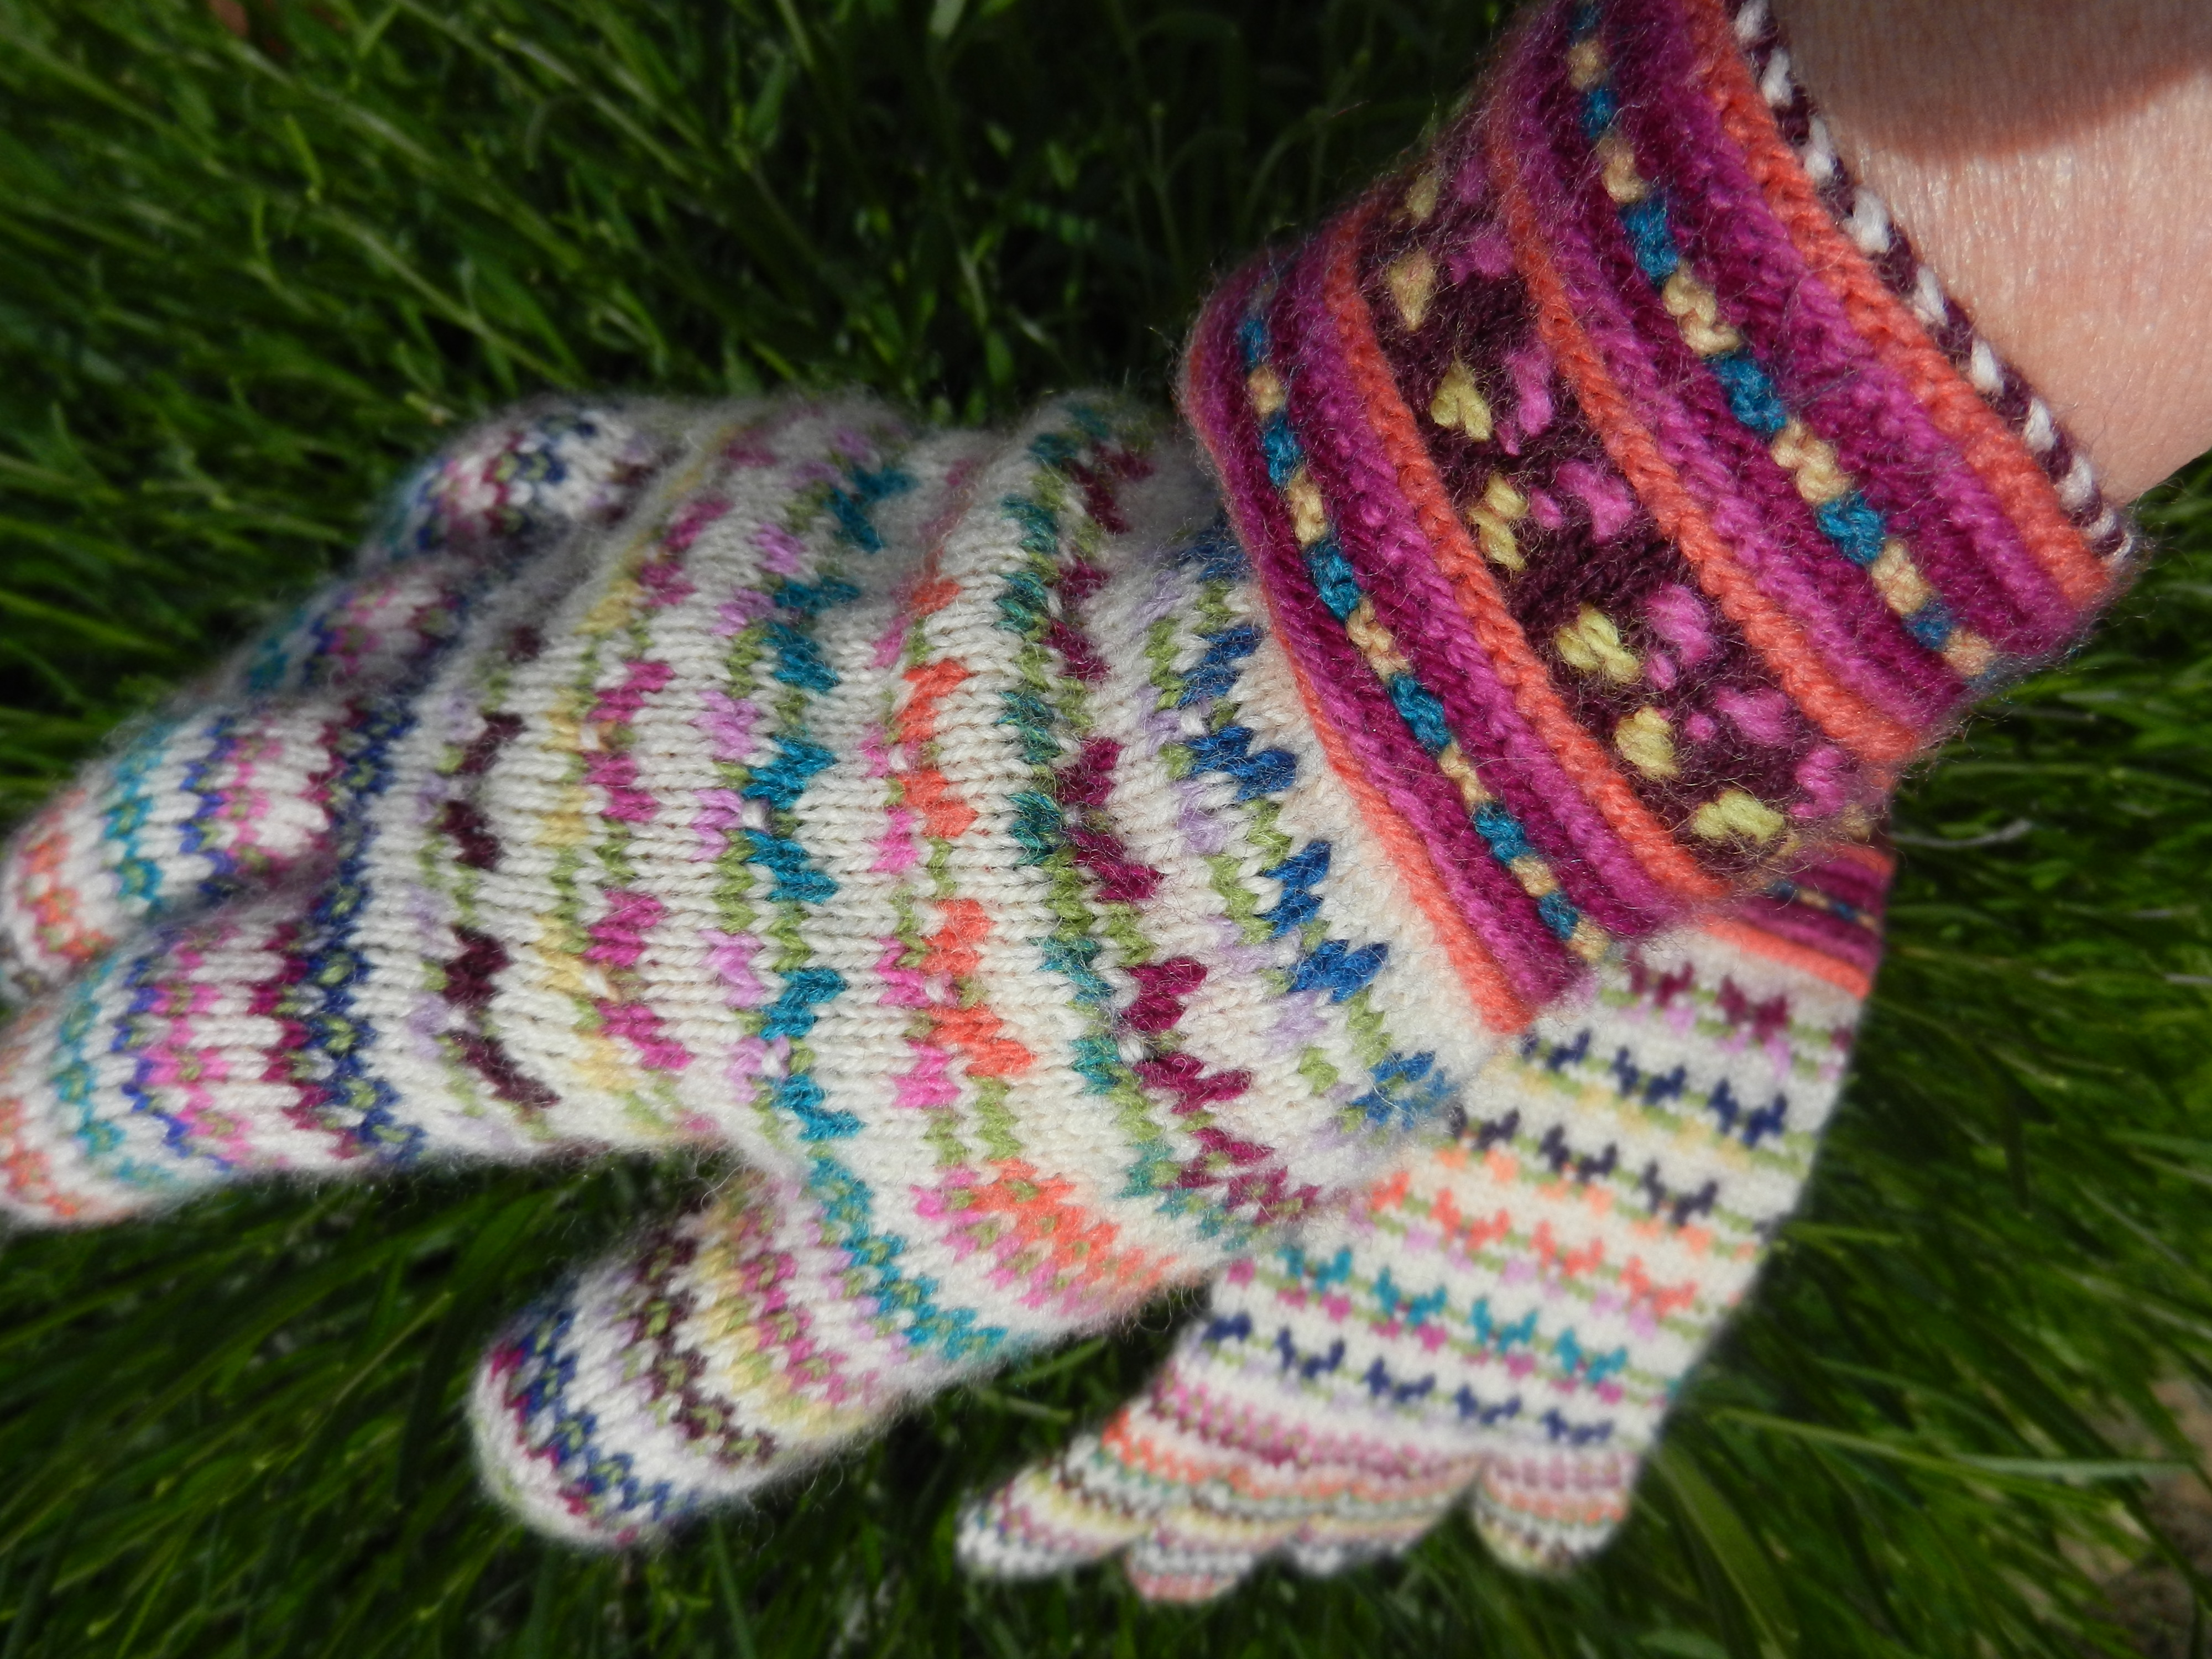 Fingerless gloves darn yarn - Something Made From Odds And Ends And Yarn Scraps Is Always Satisfying But It May Be A While Before I Work Another Pair Of Multi Coloured Gloves